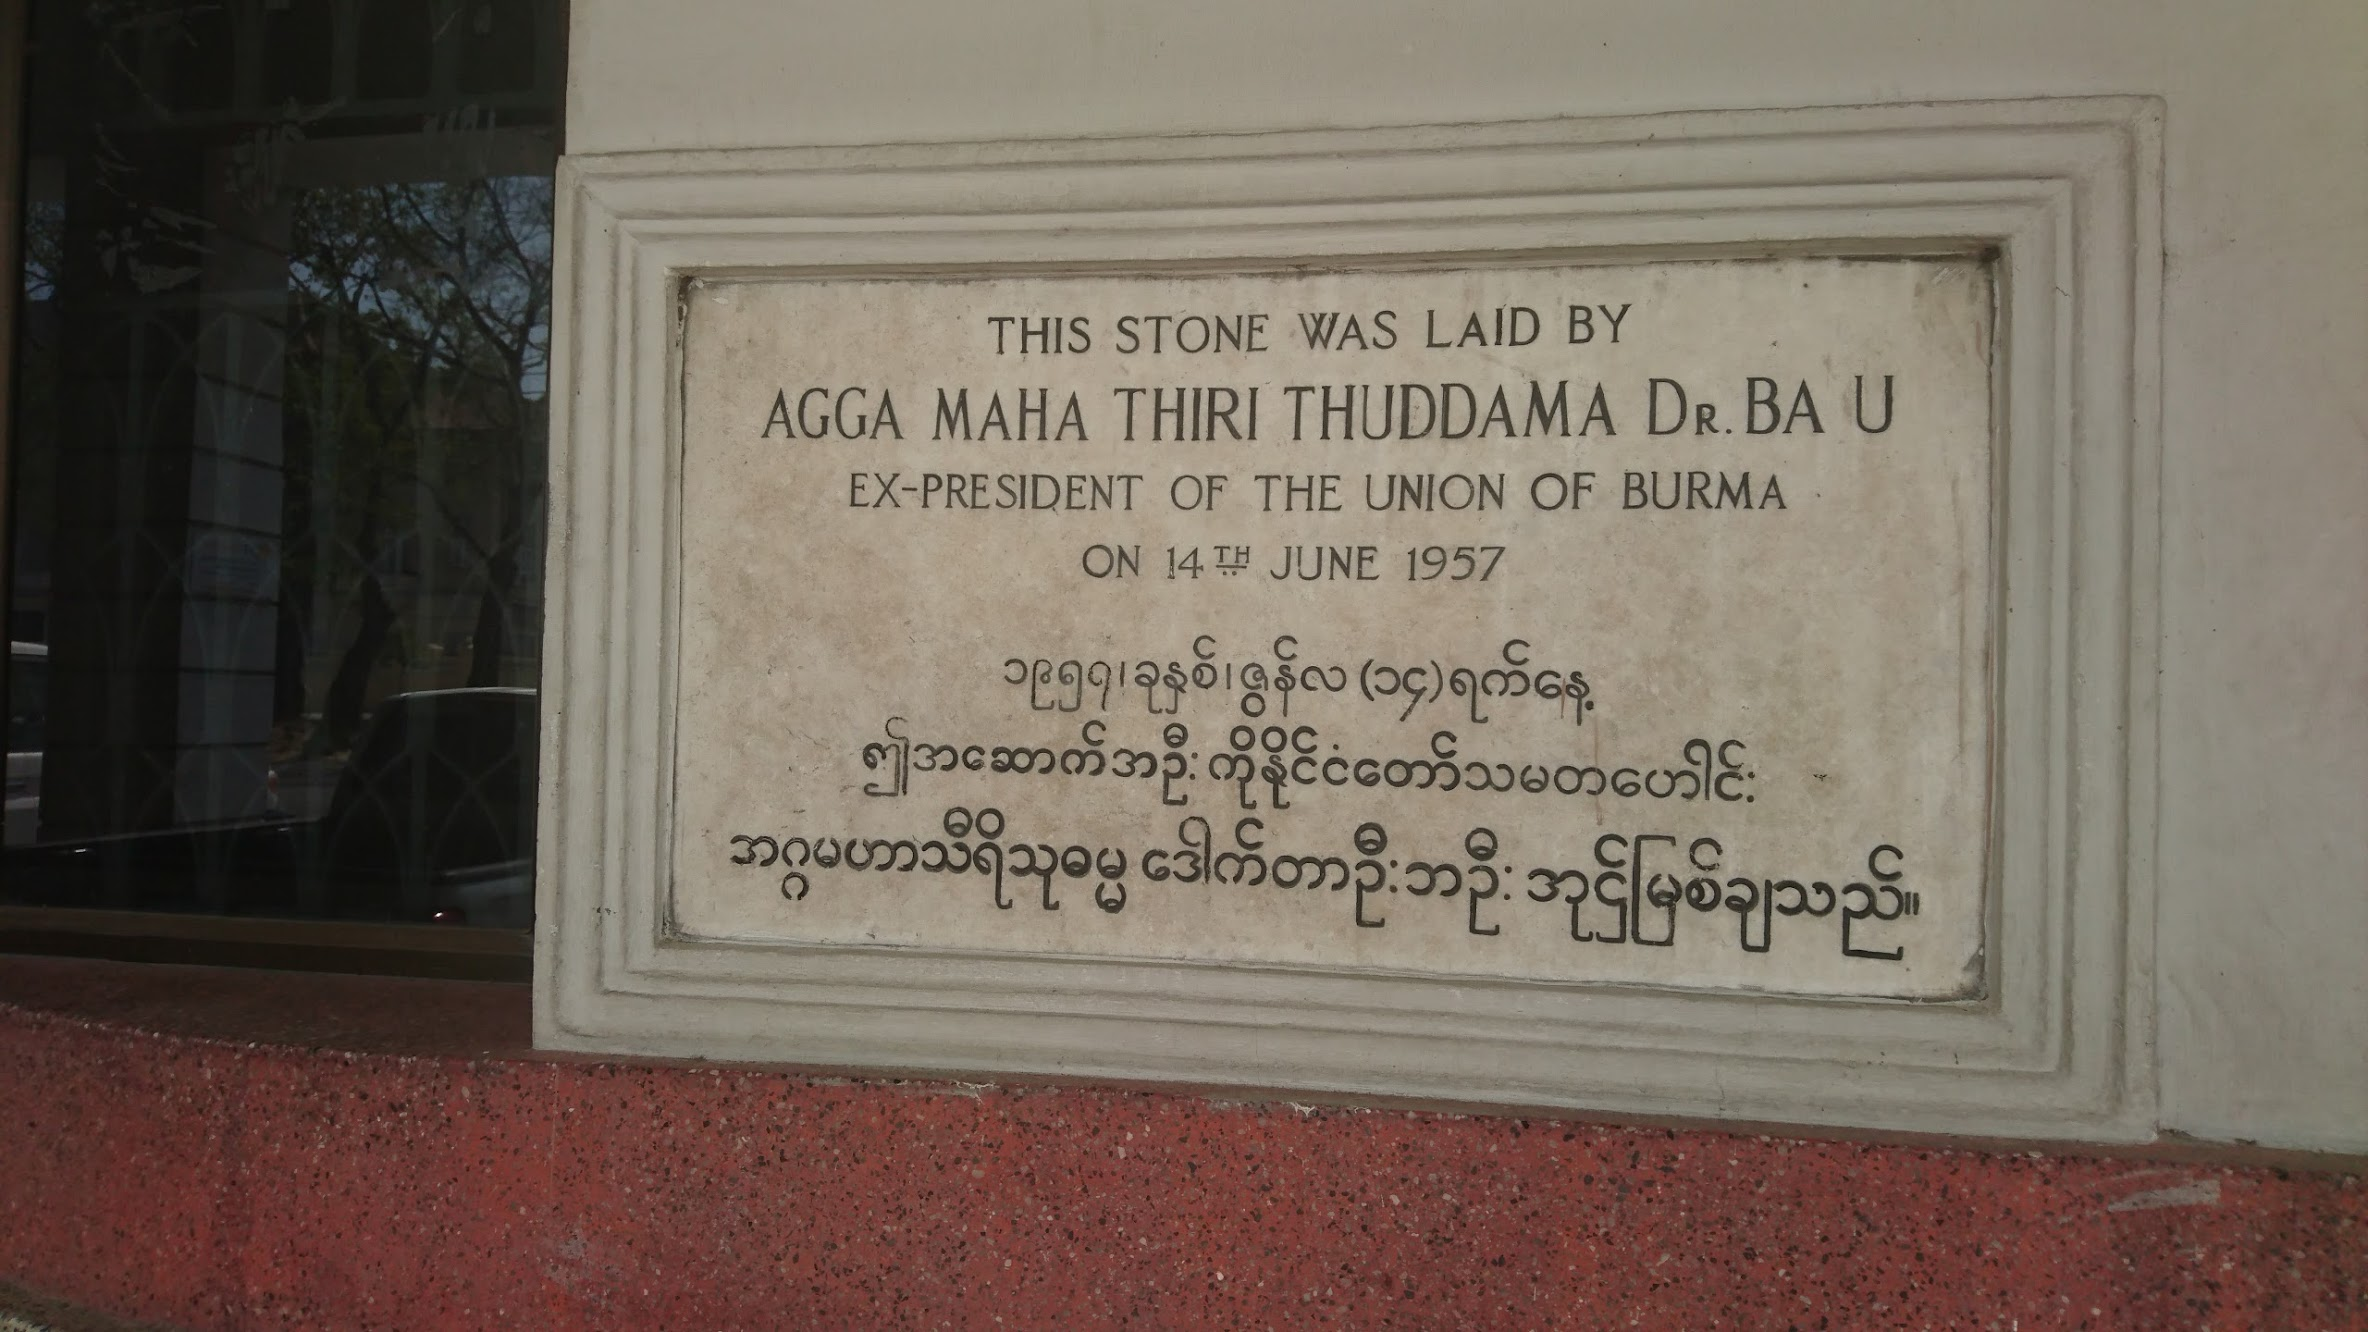 The title for Win Maung, who served as Burma's president until 1962 when he was overthrown in a coup d'etat by Ne Win, who would then go on rule the country as a military dictator for the next 26 years.